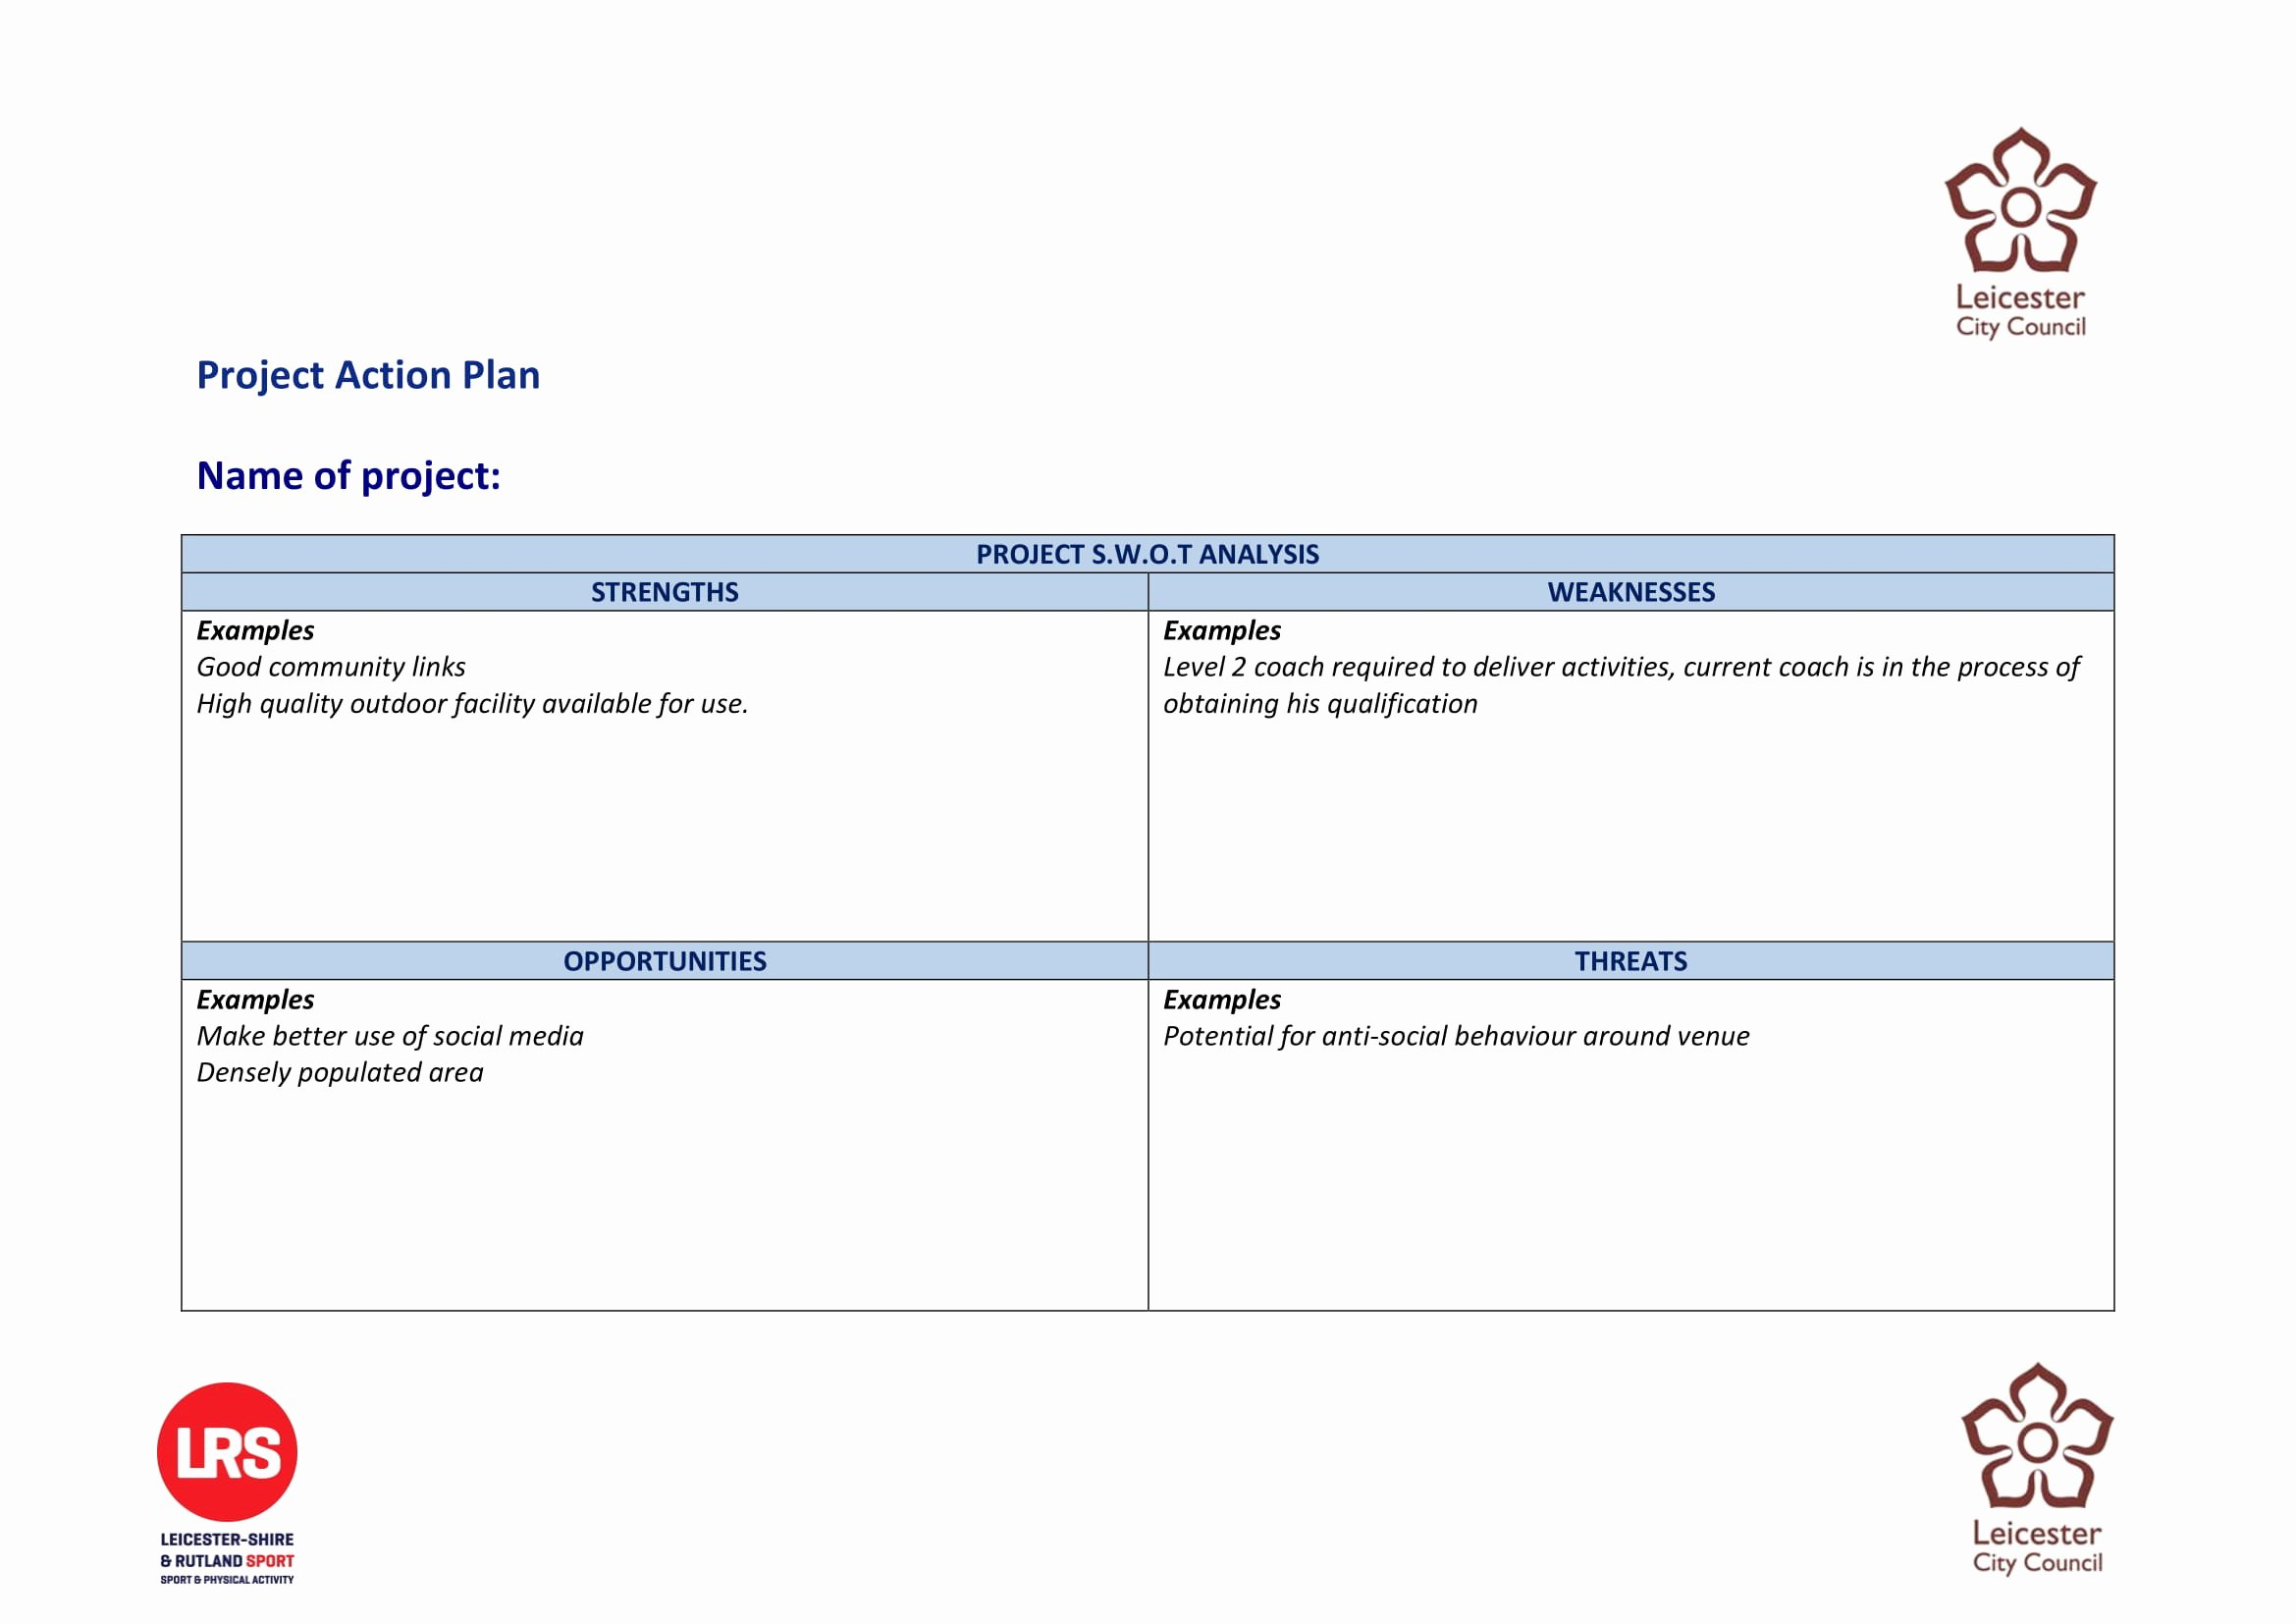 Project Action Plan Template Beautiful 21 Project Action Plan Examples Pdf Word